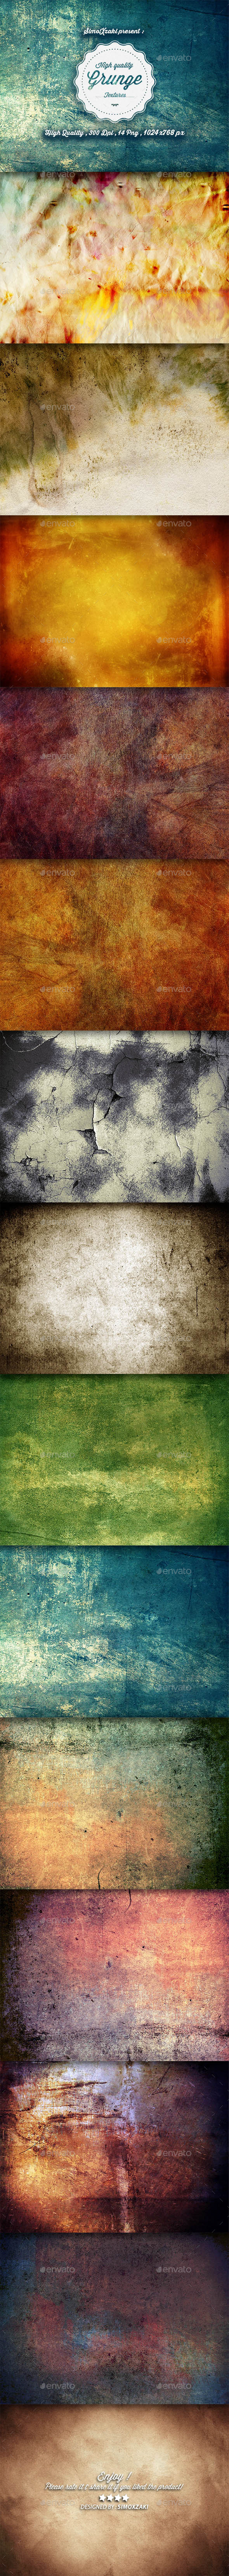 GraphicRiver High Quality Grunge Textures 8953448